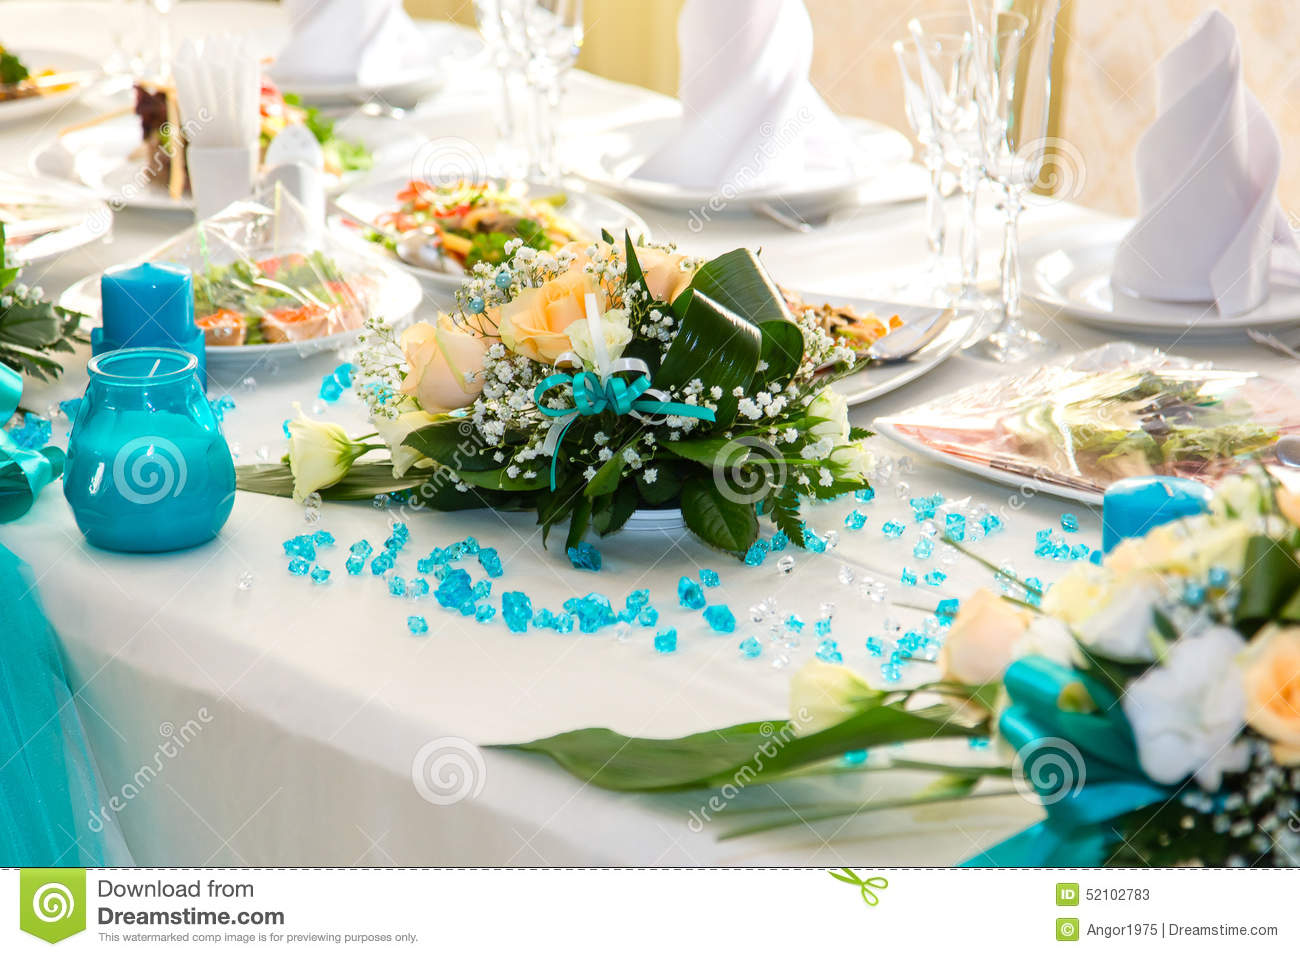 Wedding Table Turquoise Wedding Table Decorations bouquet of roses and turquoise decoration on the wedding table table